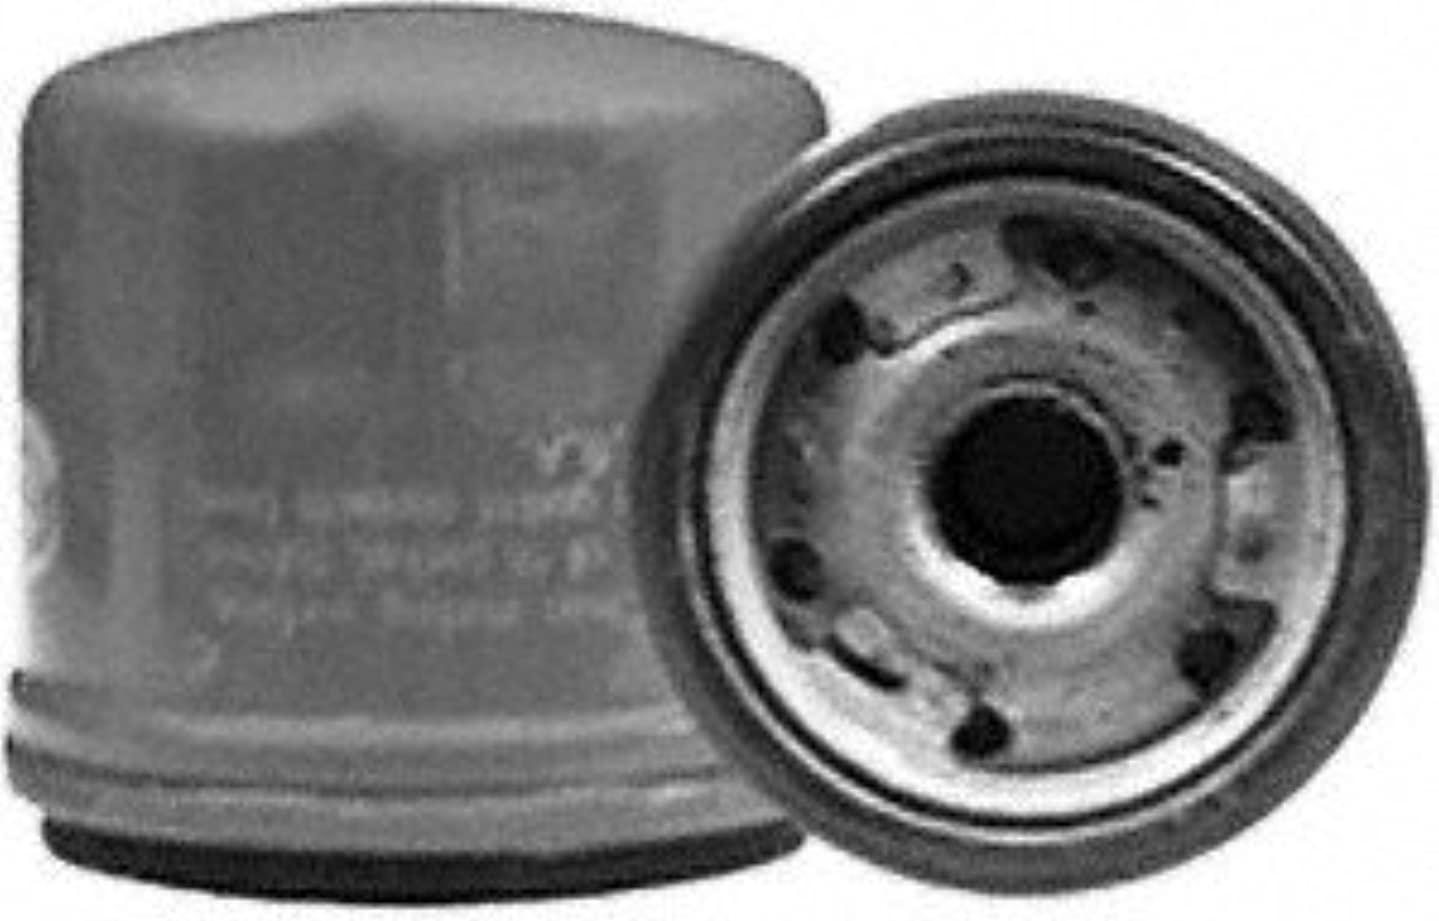 Hastings HF992 Transmission Spin-On Filter